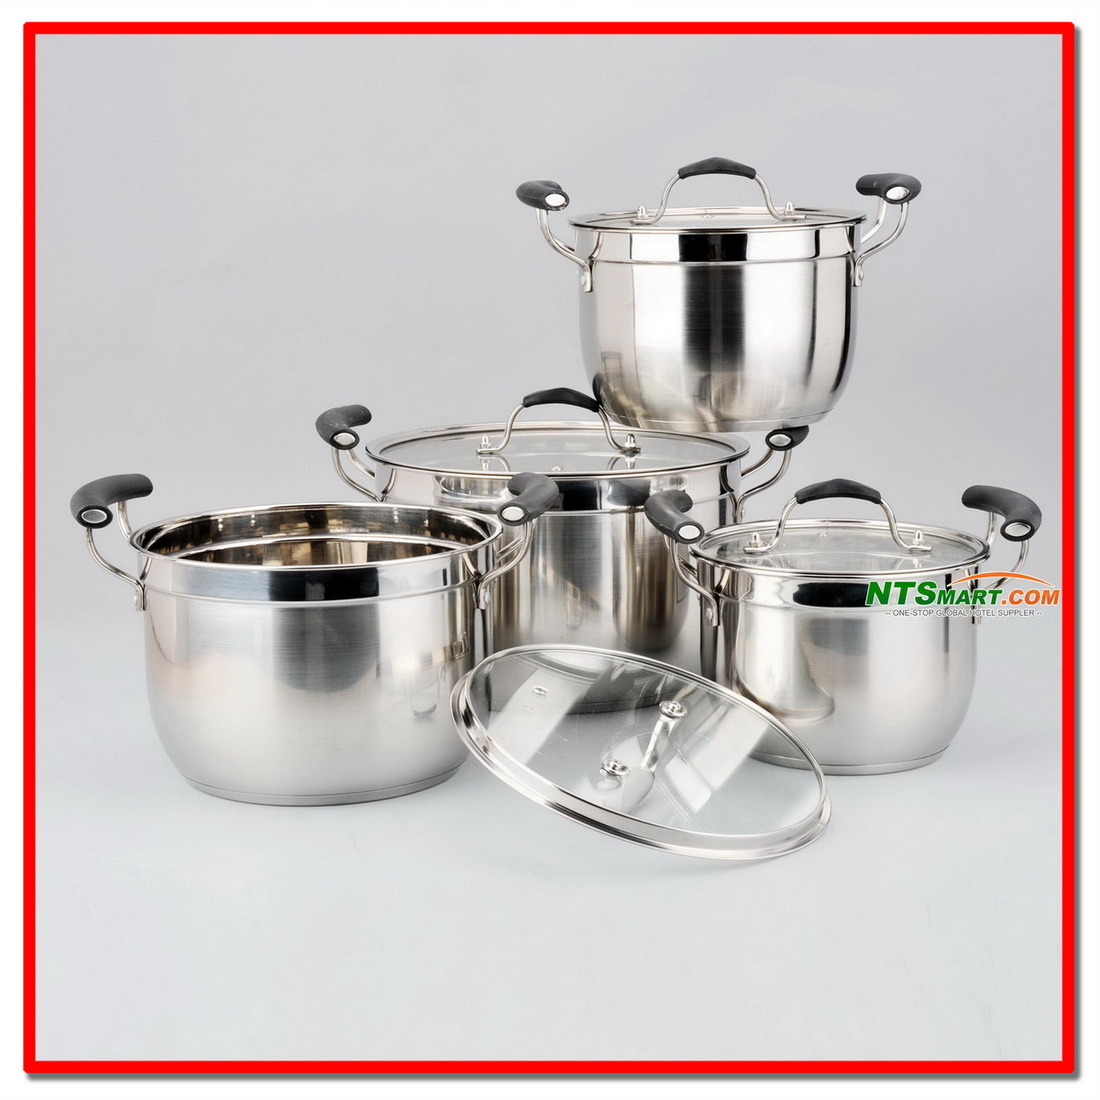 8PCS Stainless Steel Cookware Set Kitchenware (N000006882, 6883, 6884)